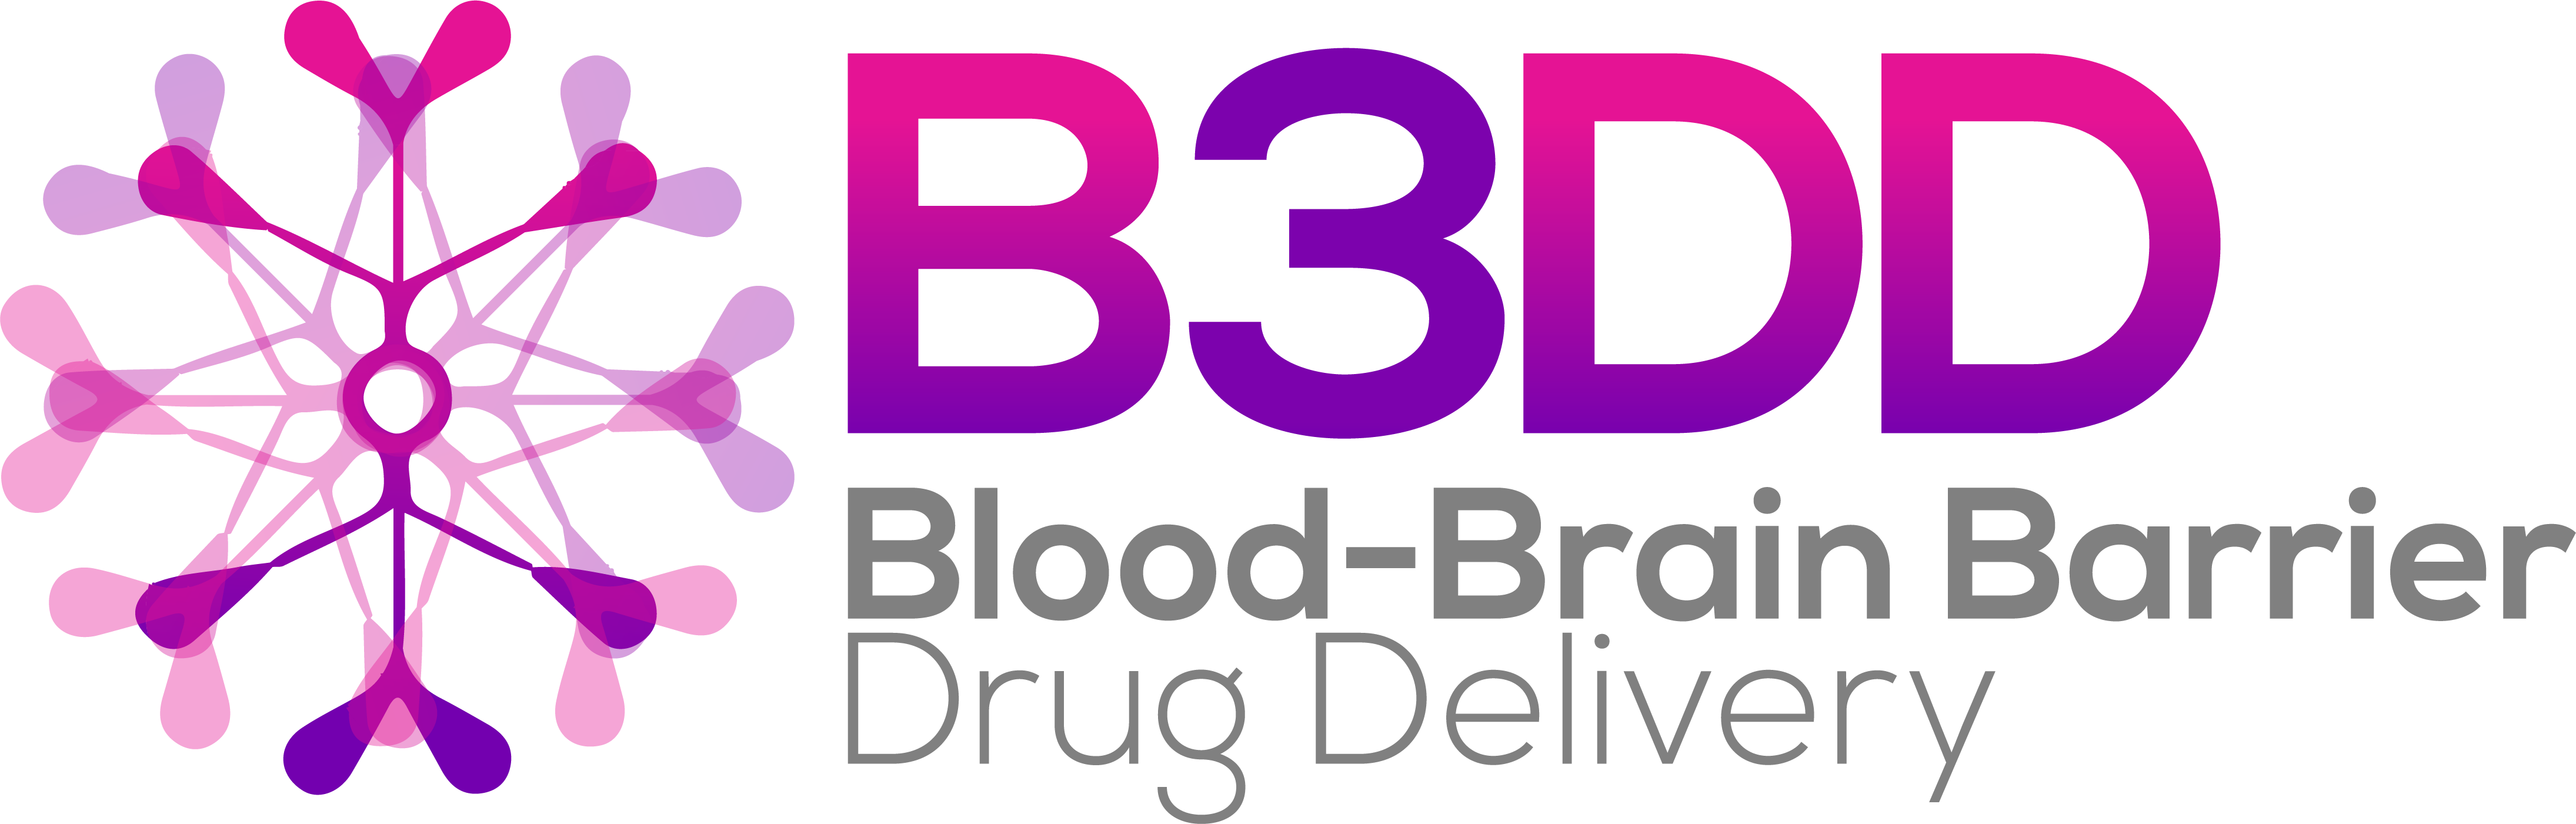 HW190327 B3DD Blood-Brain Barrier Drug Delivery logo v3